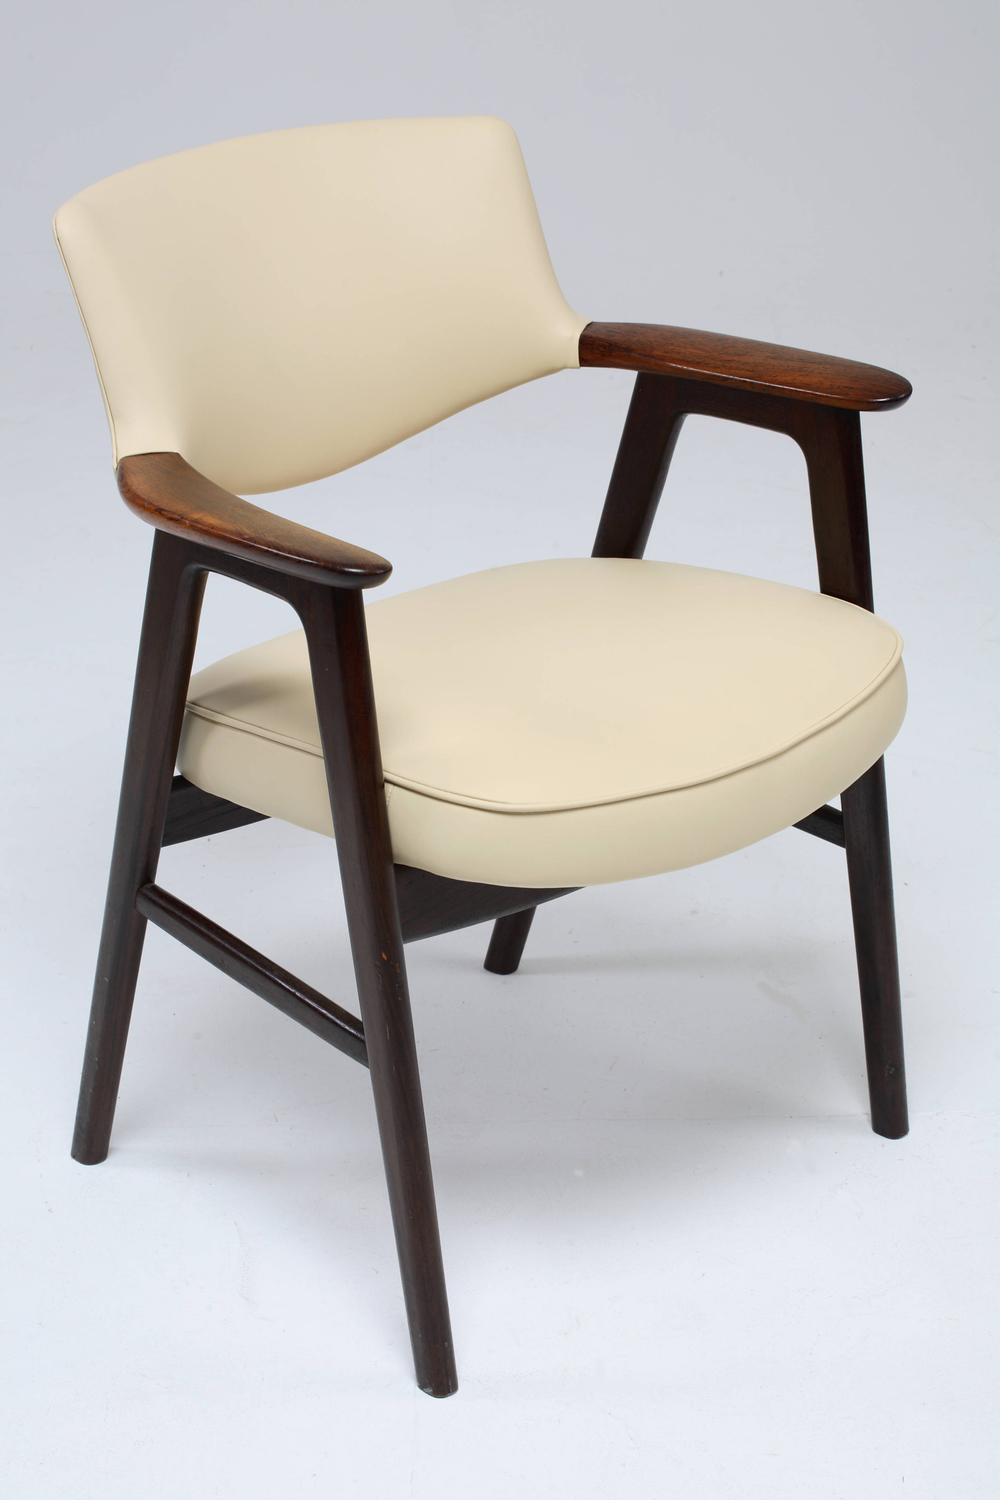 E Kierkegaard 1955 Armchair with Rosewood Armrests   • made 1955-69     •